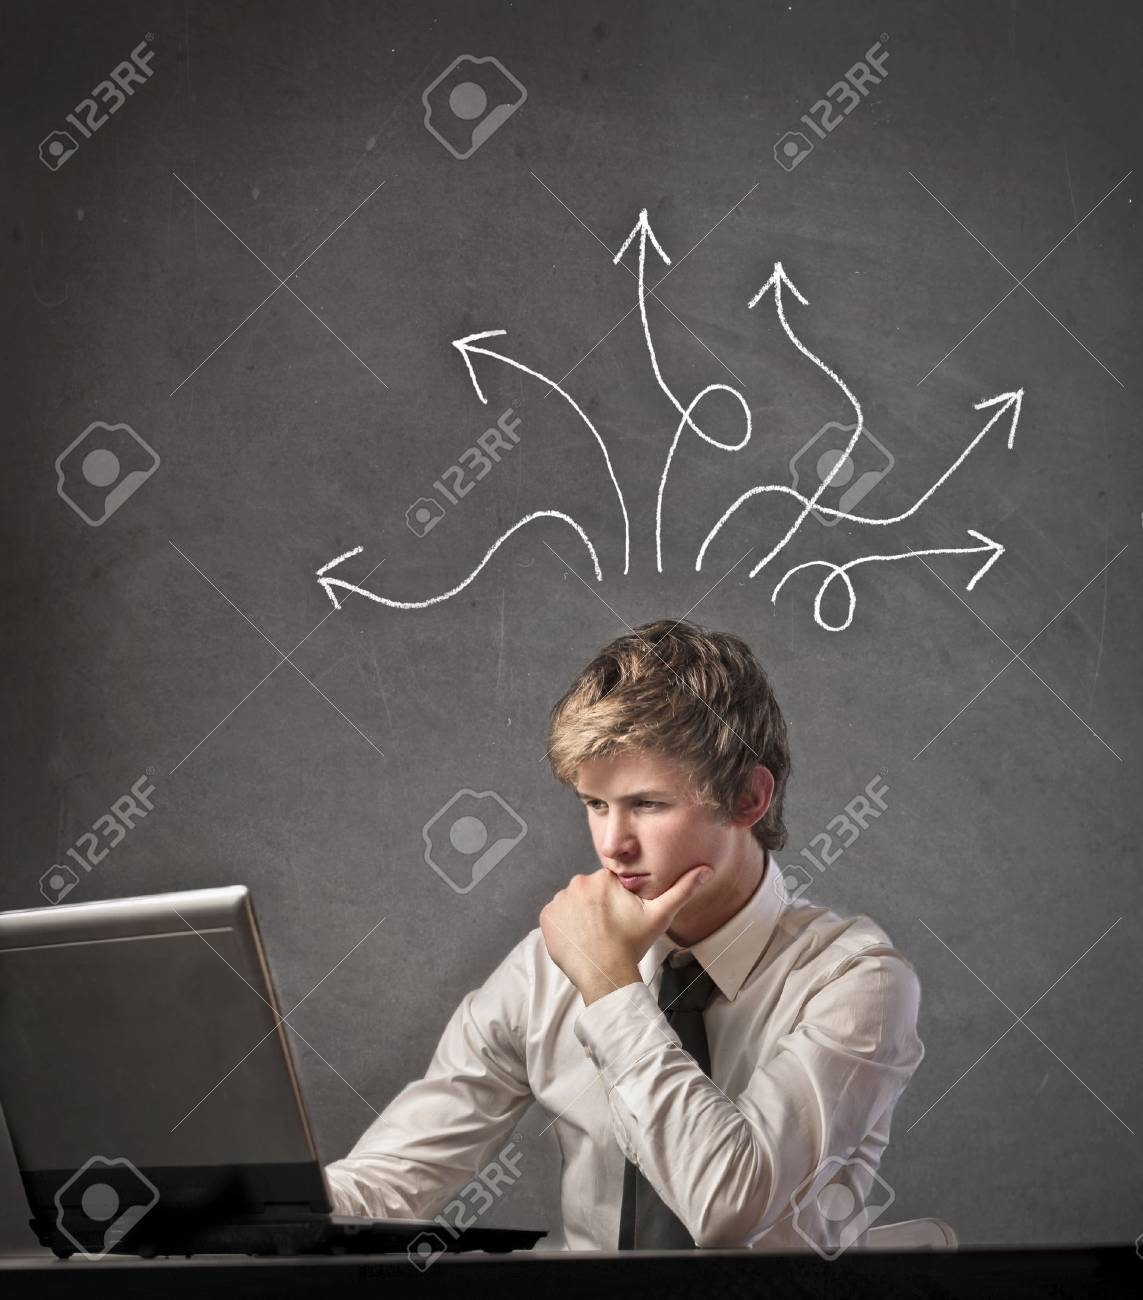 Businessman thinking a solution to a problem Stock Photo - 15237784